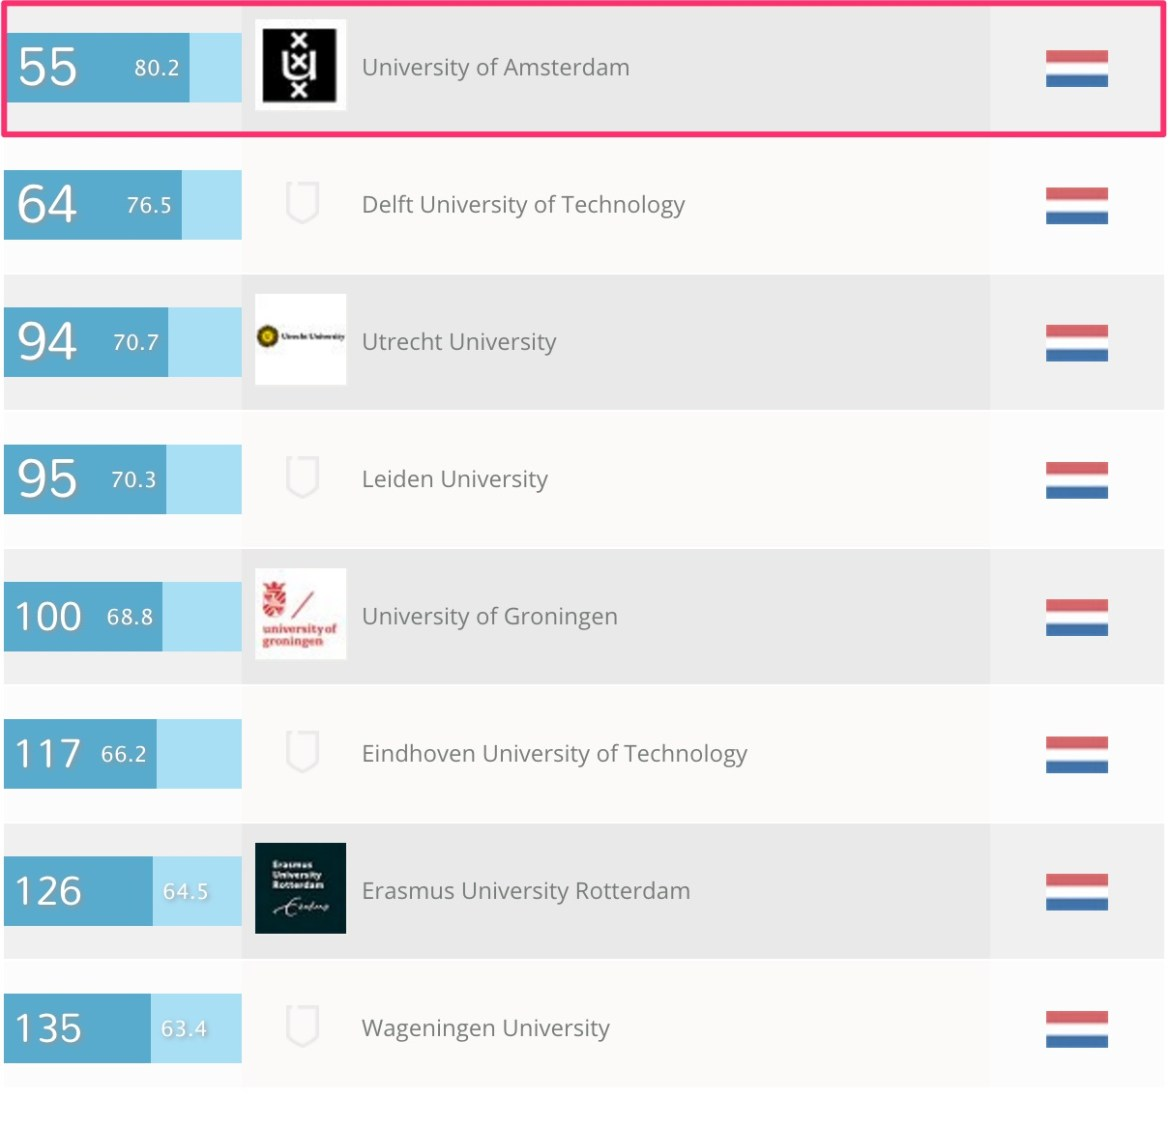 QS_World_University_Rankings®_2015_16___Top_Universities